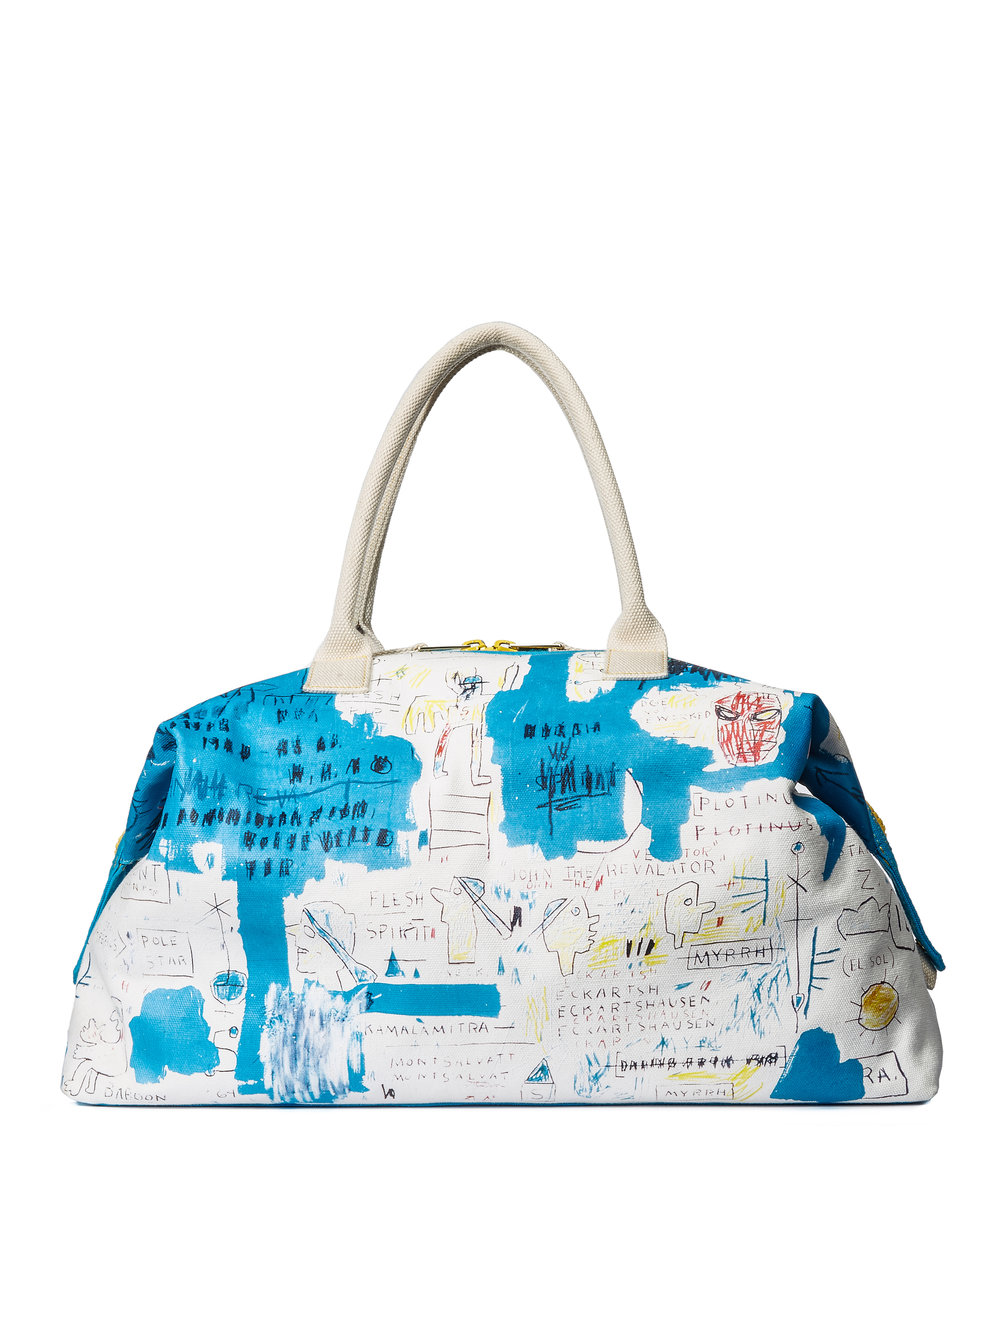 alice_and_olivia_BASQUIATASCENTCANVASWEEKENDER_MULTI_888819391546_PRODUCT_01--1776591705.jpg